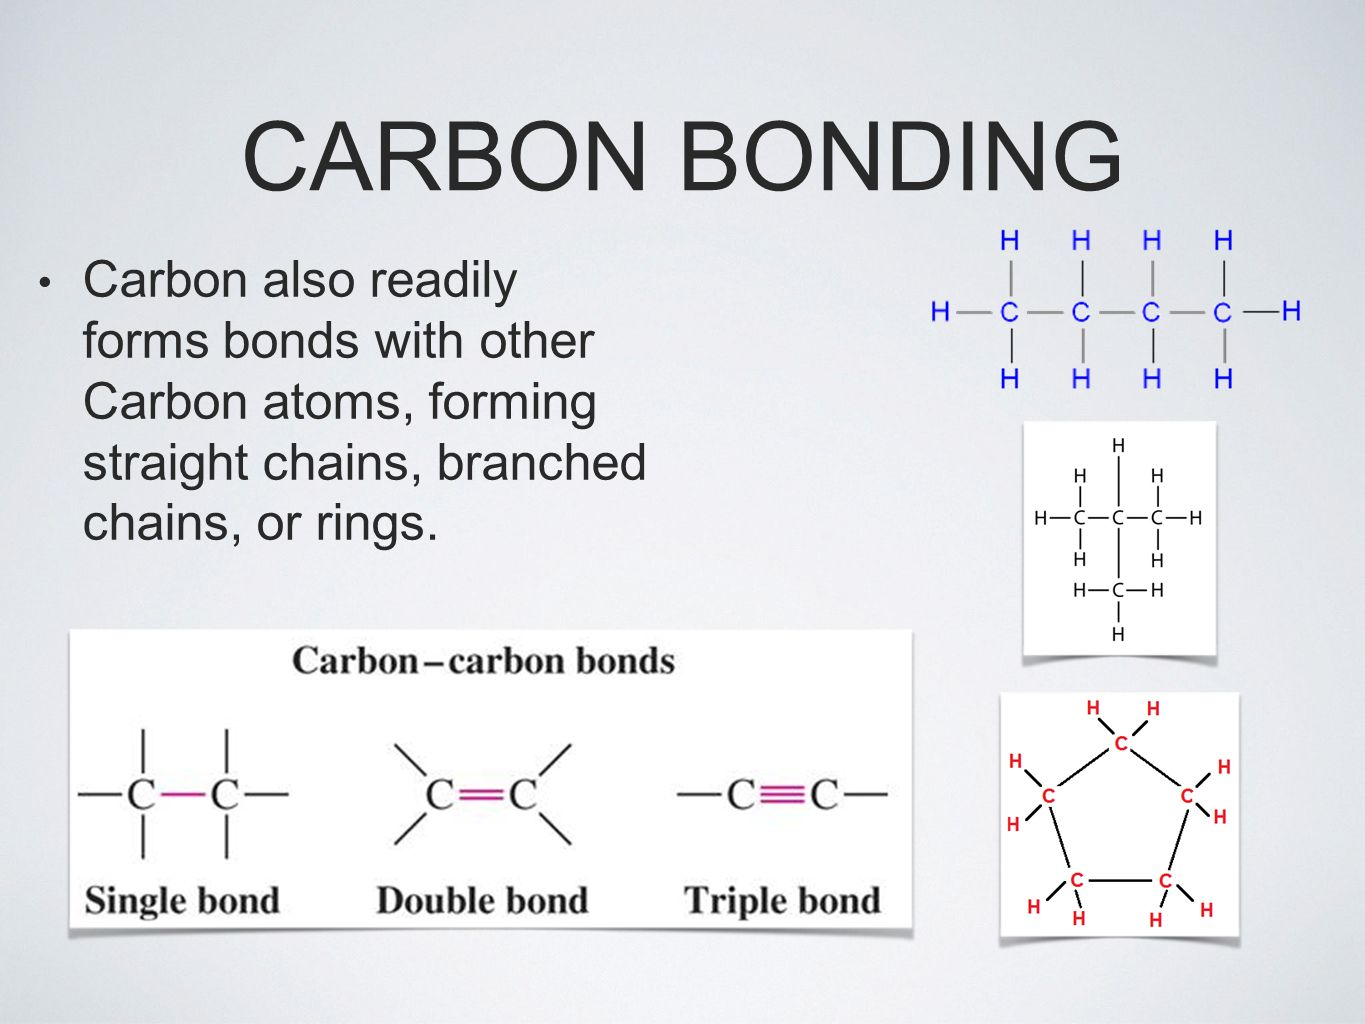 CARBON BONDING Carbon also readily forms bonds with other Carbon atoms, forming straight chains, branched chains, or rings.